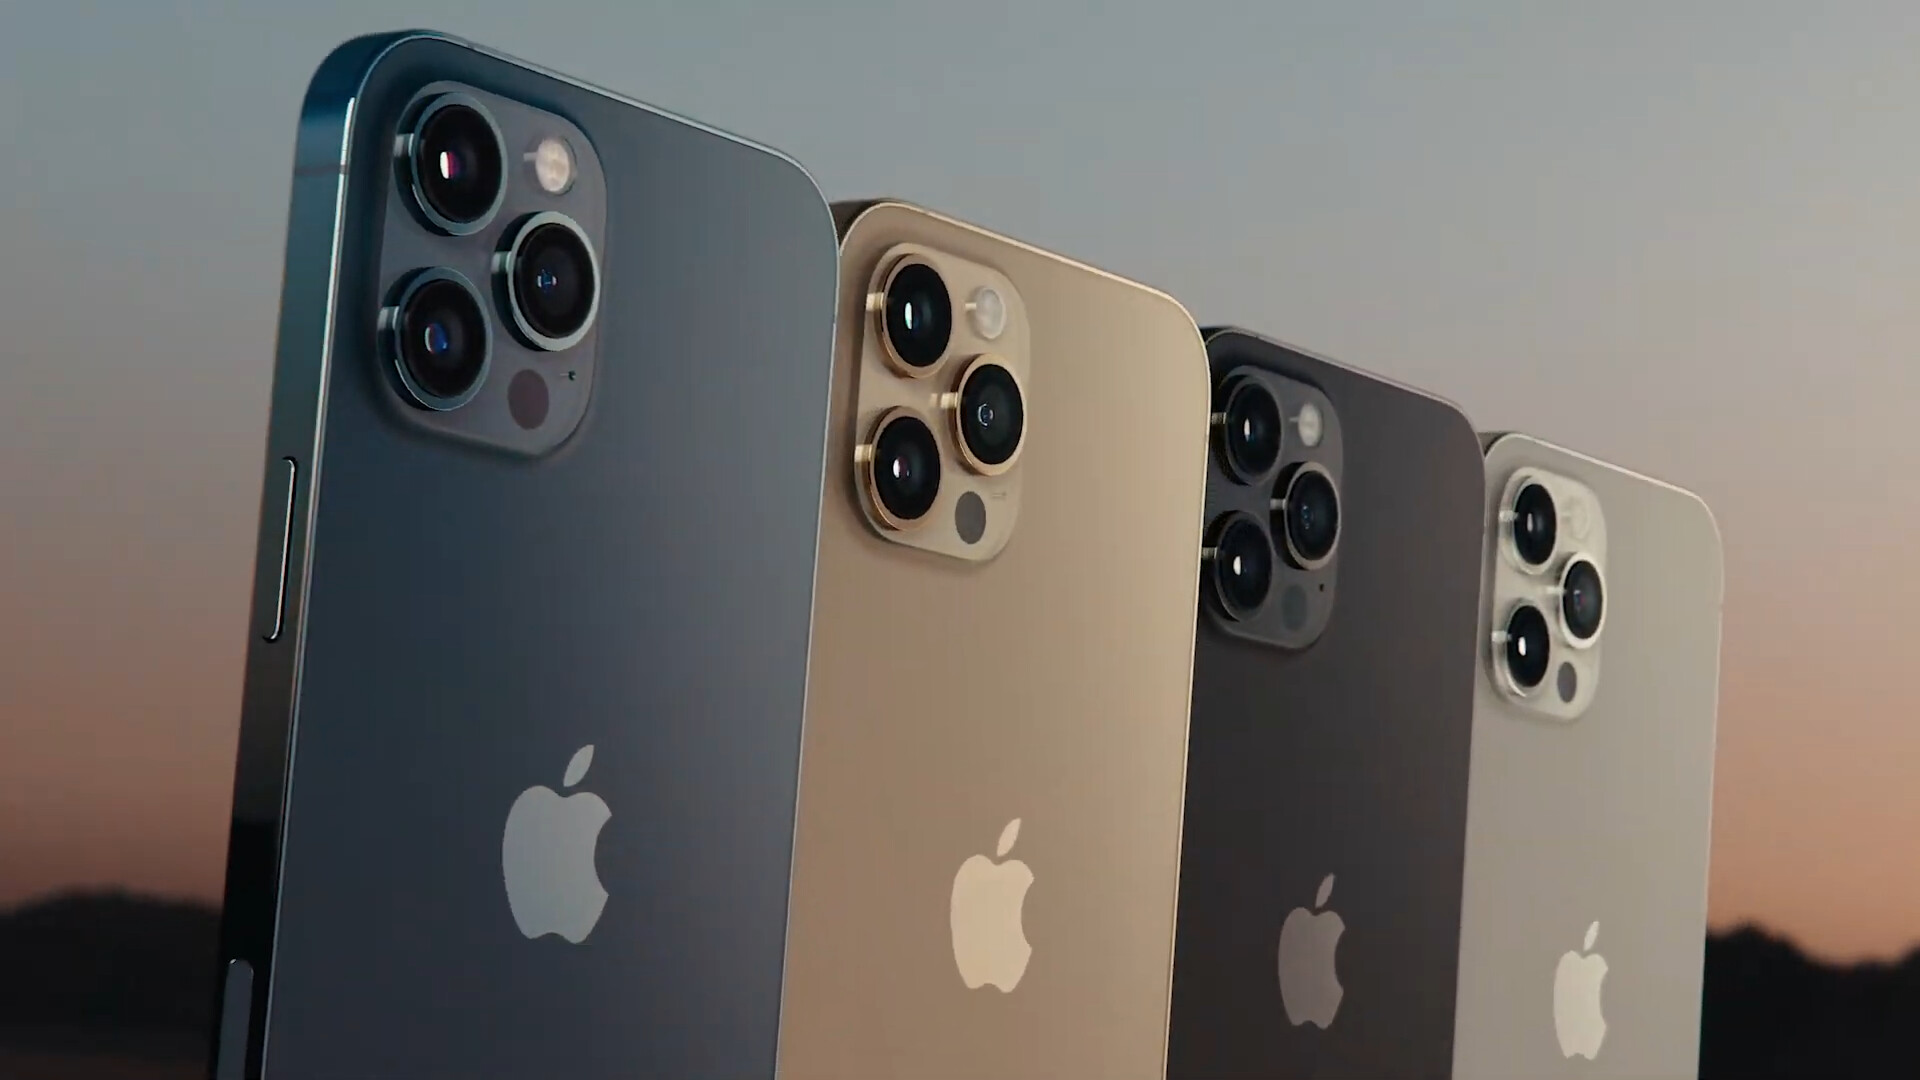 iPhone 12 Pro colors - iPhone 12 vs iPhone 12 Pro